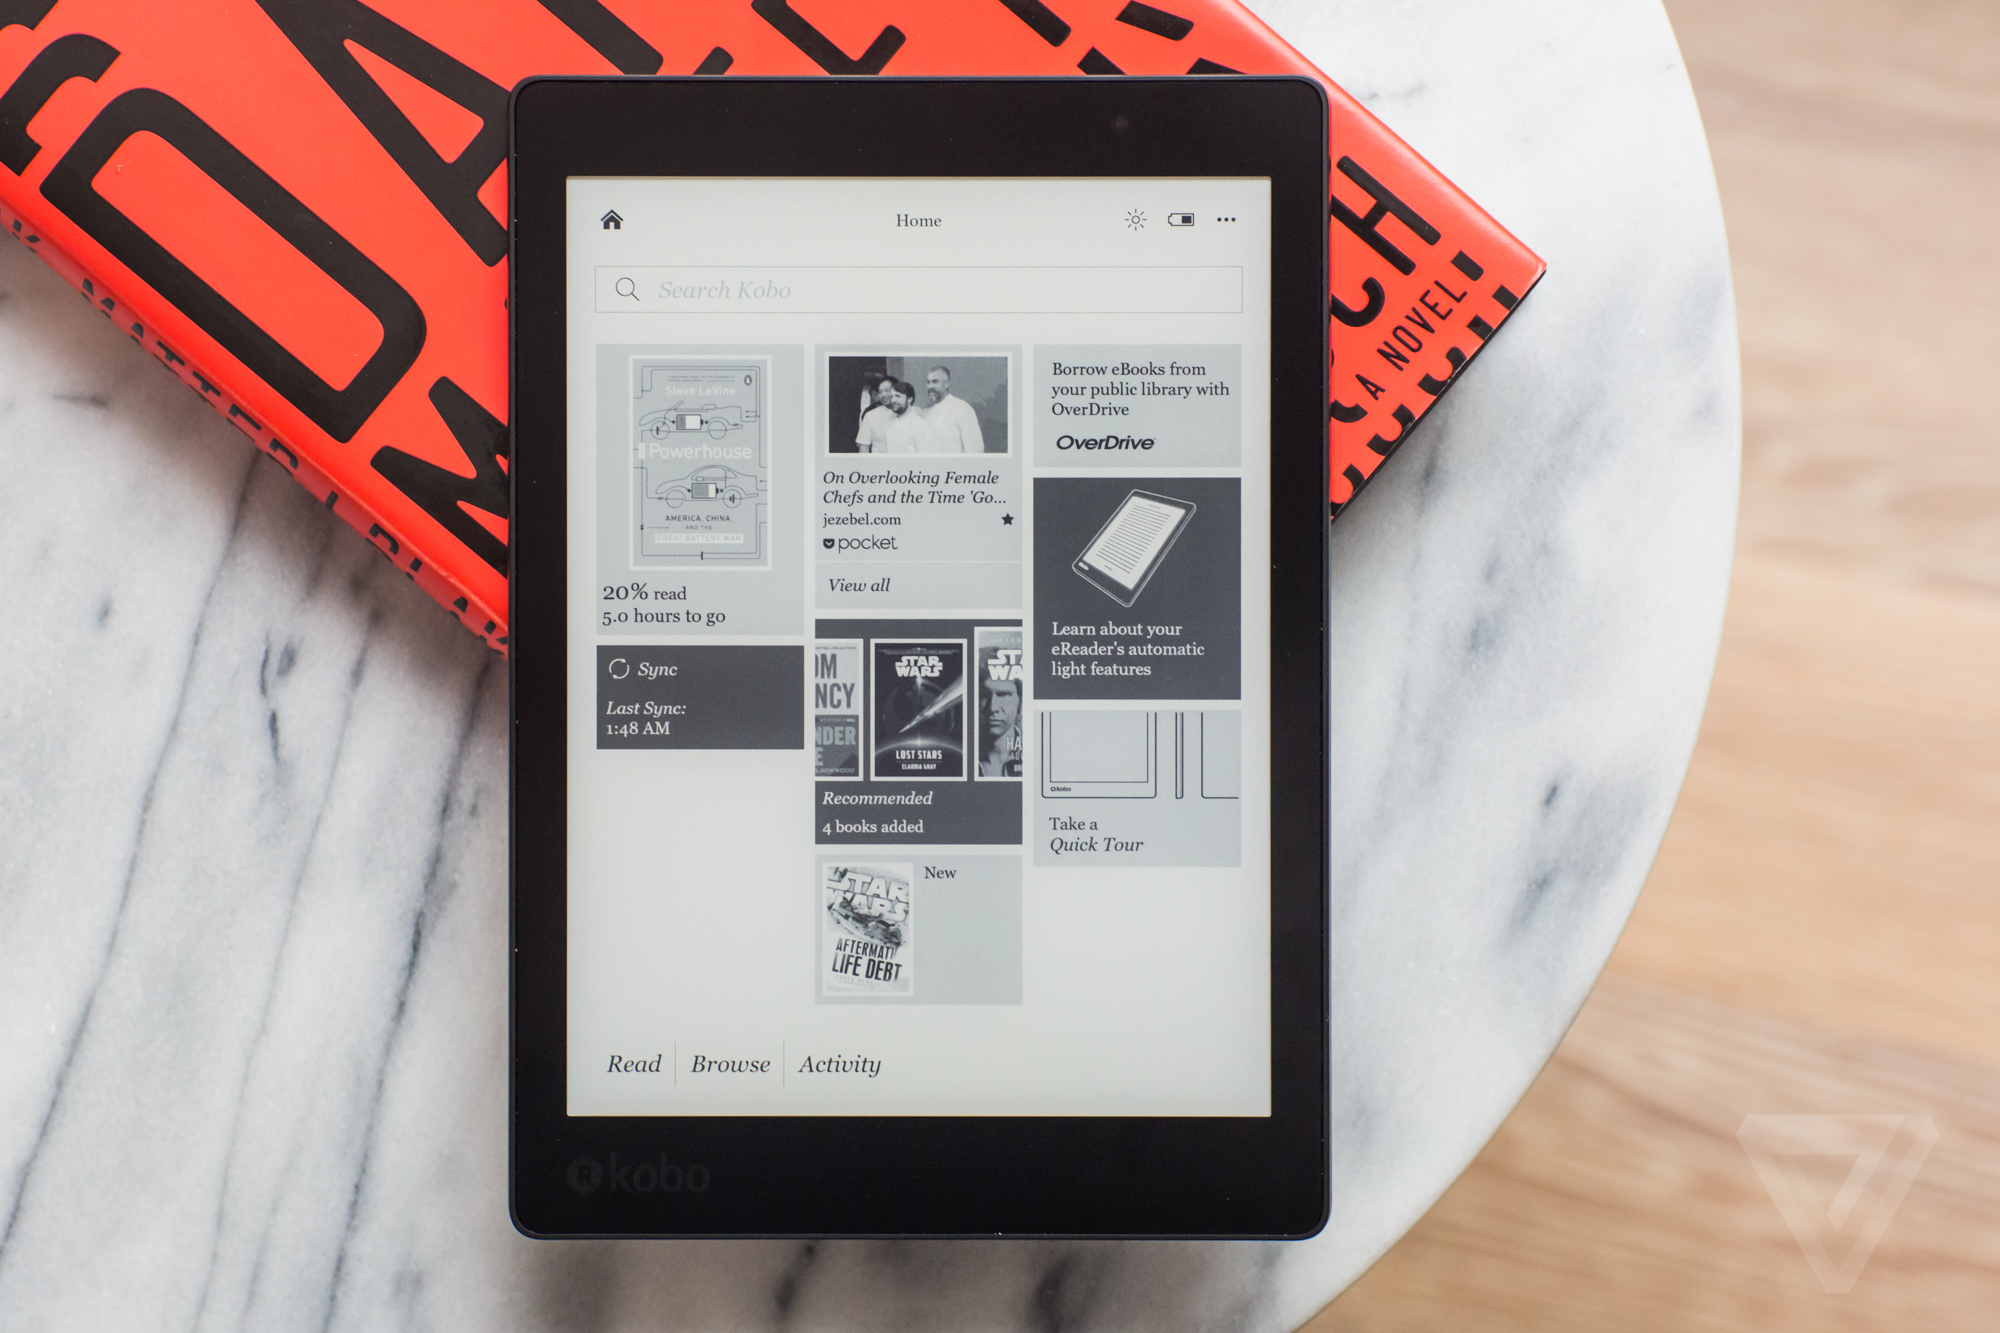 how to transfer ebooks from kobo to another kobo